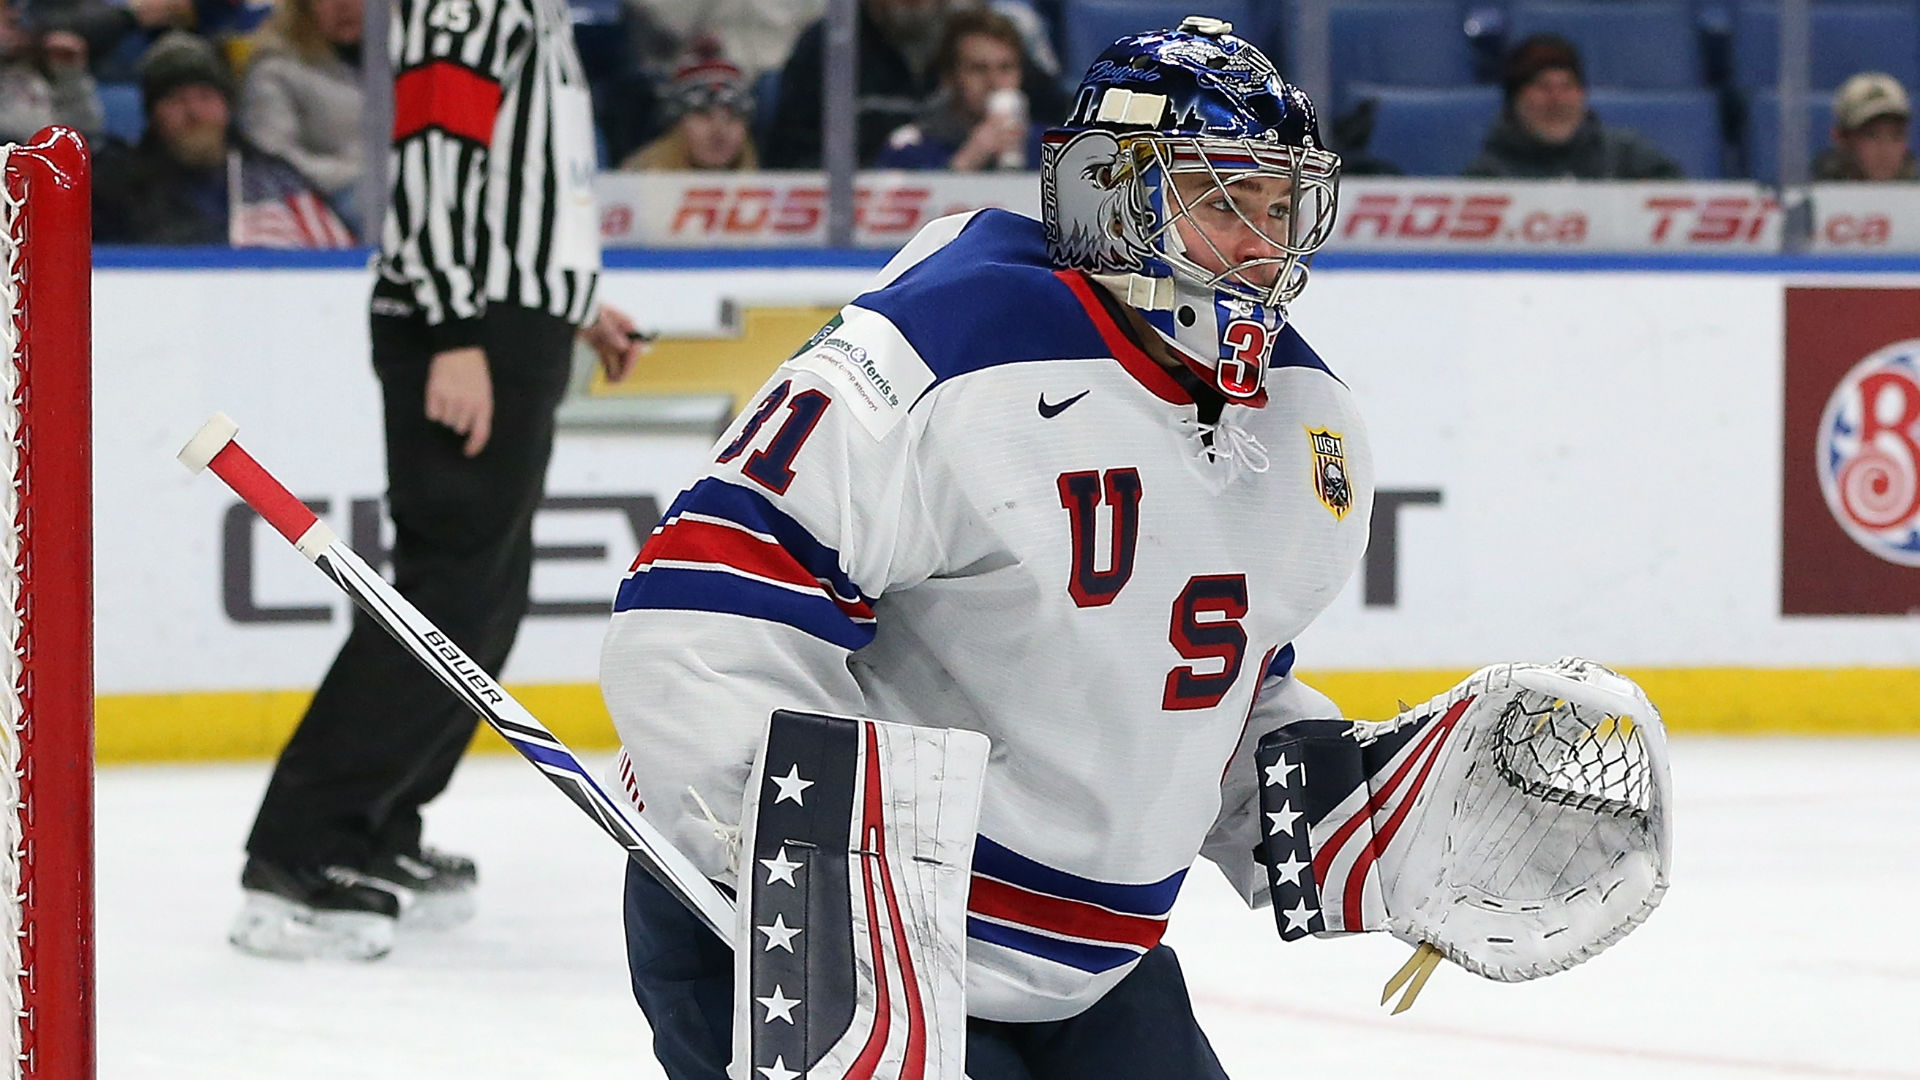 WJC: Leafs Goalie Prospect Woll Focused On WJC Gold, Not Olympics Yet